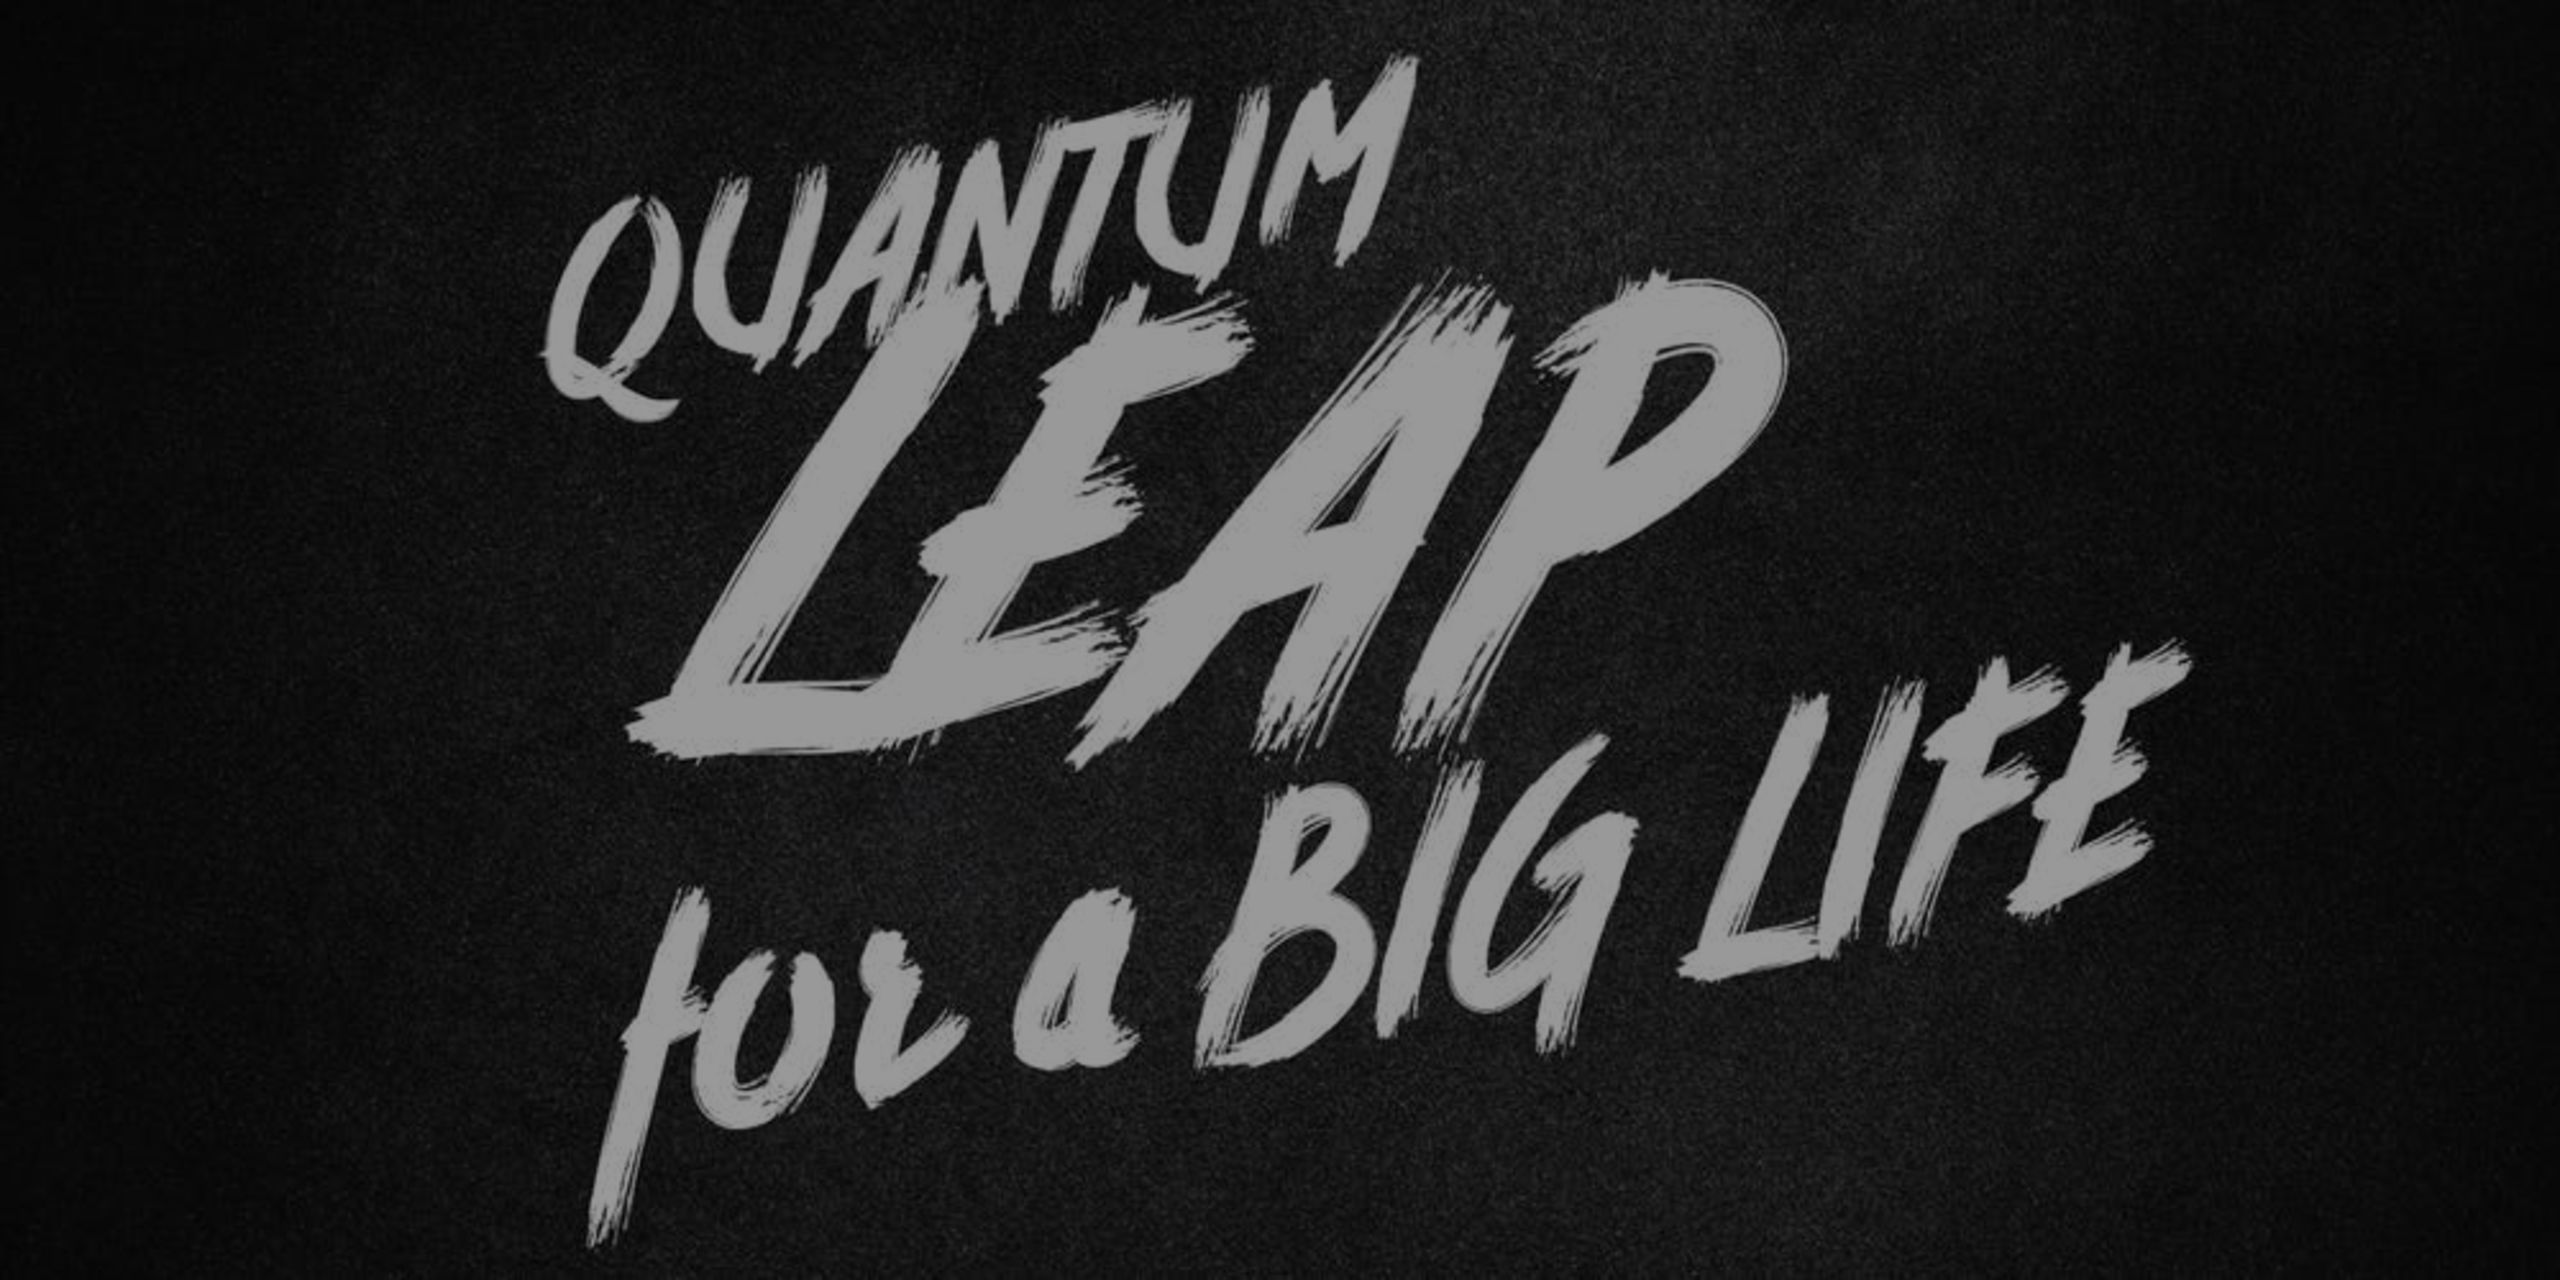 Top 10 Things I learned from attending QUANTUM LEAP!